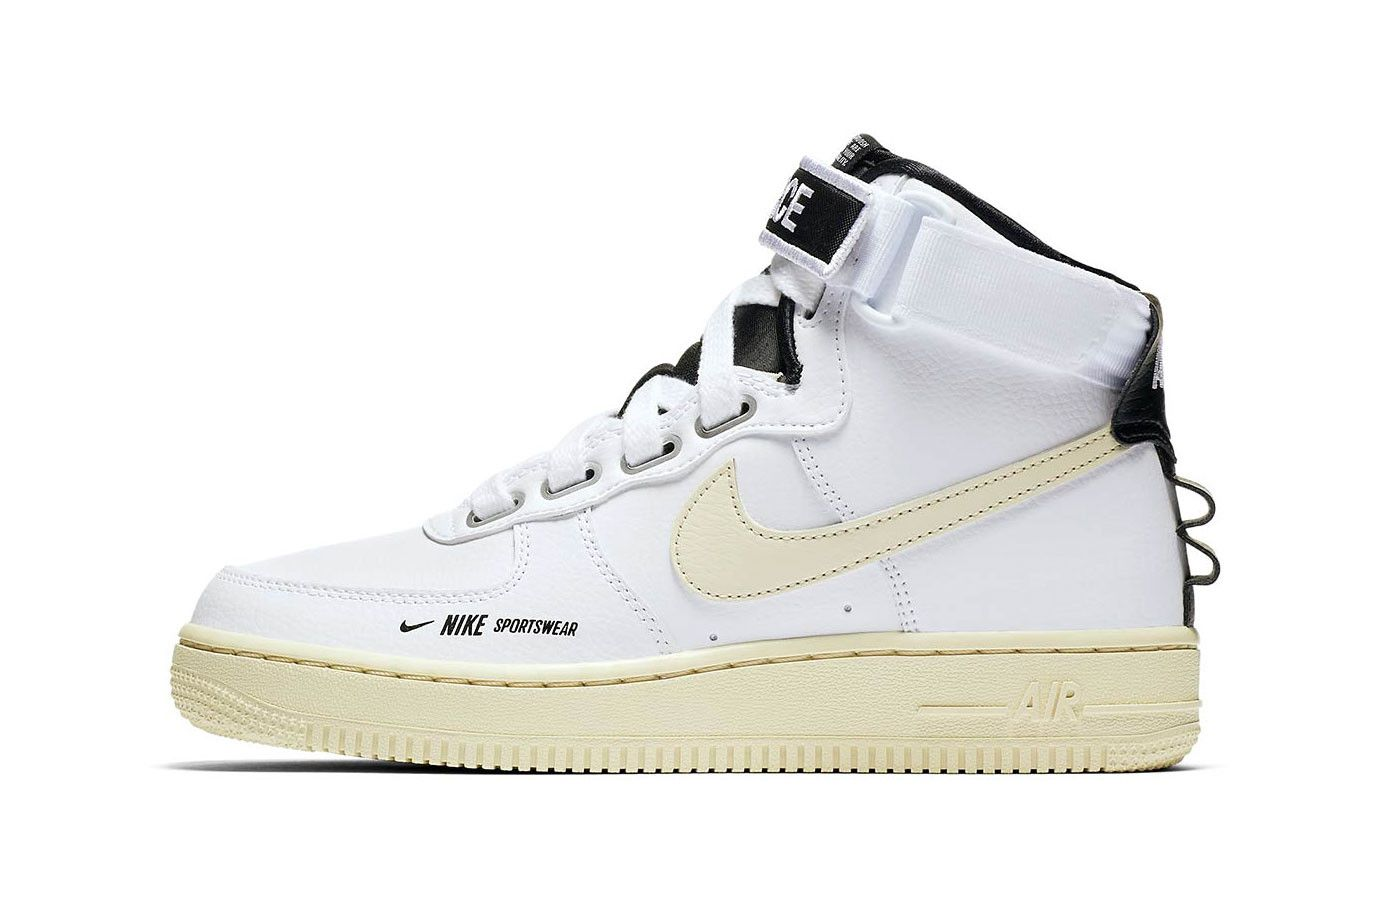 1cc03272e19e32 Nike Air Force 1 Utility High Release Information logo sneaker branding  black white pink colorways date info